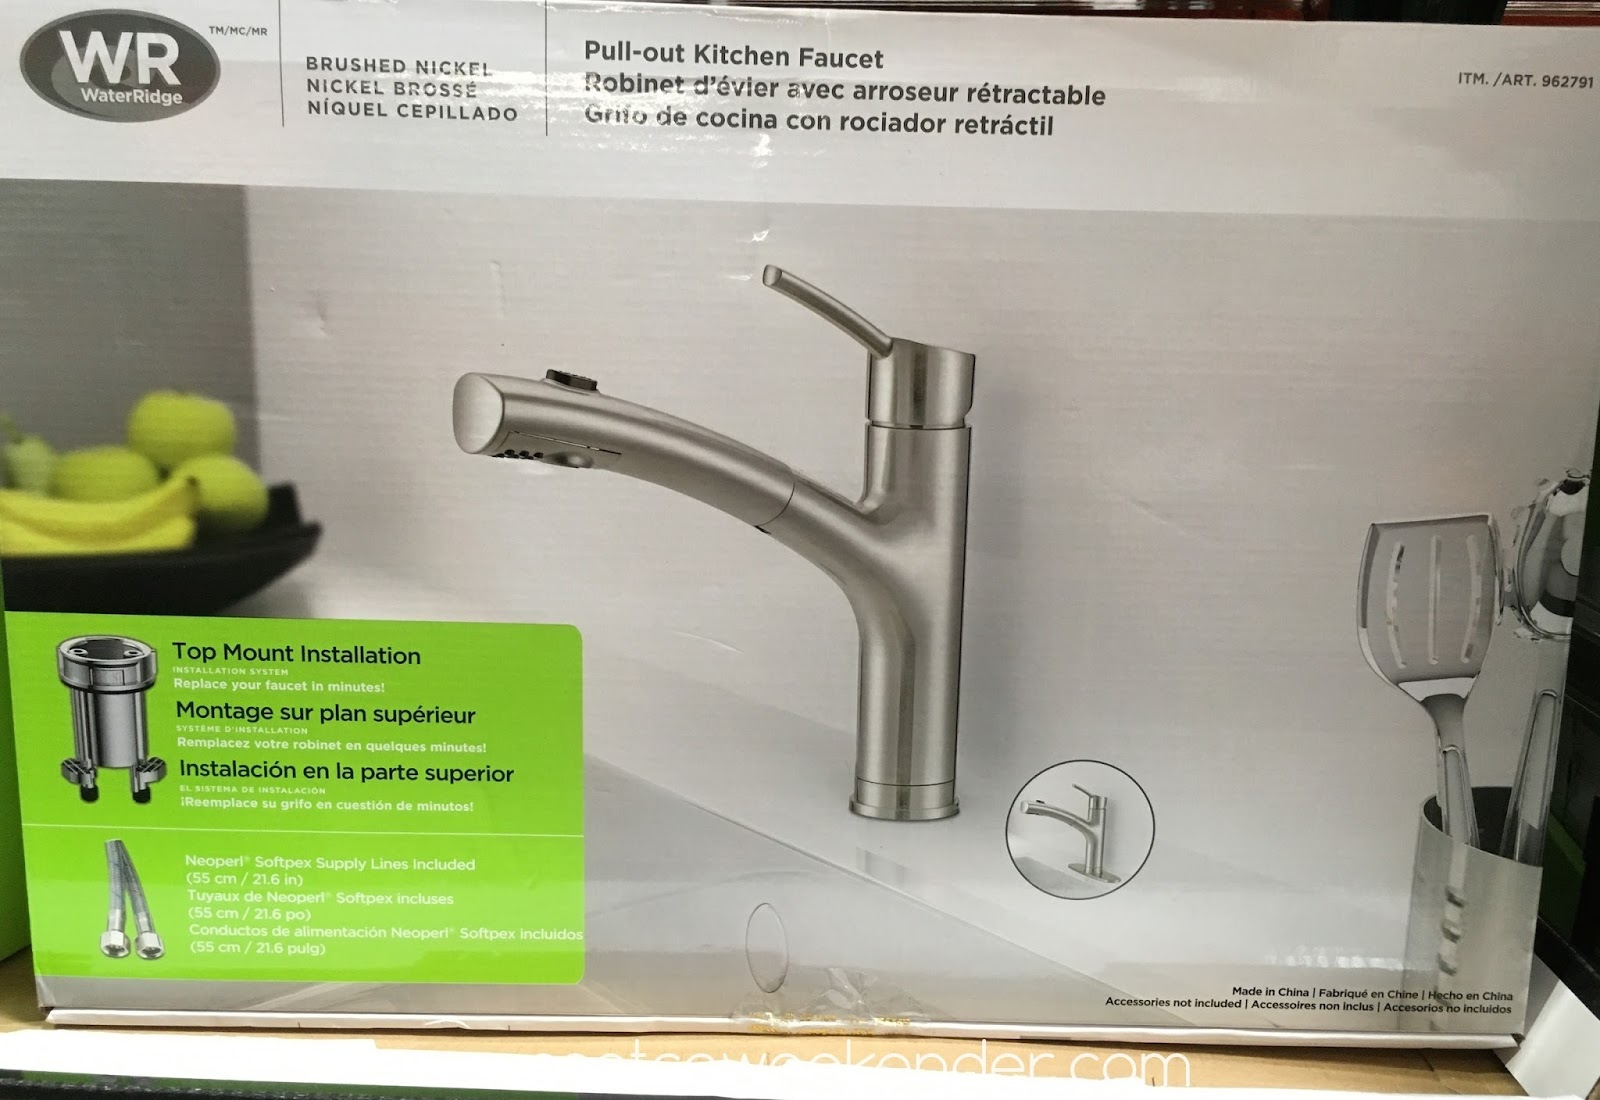 waterridge euro style pull out kitchen faucet costco costco kitchen faucet Improve your kitchen s decor with the stylish WaterRidge Euro Style Pull out Kitchen Faucet